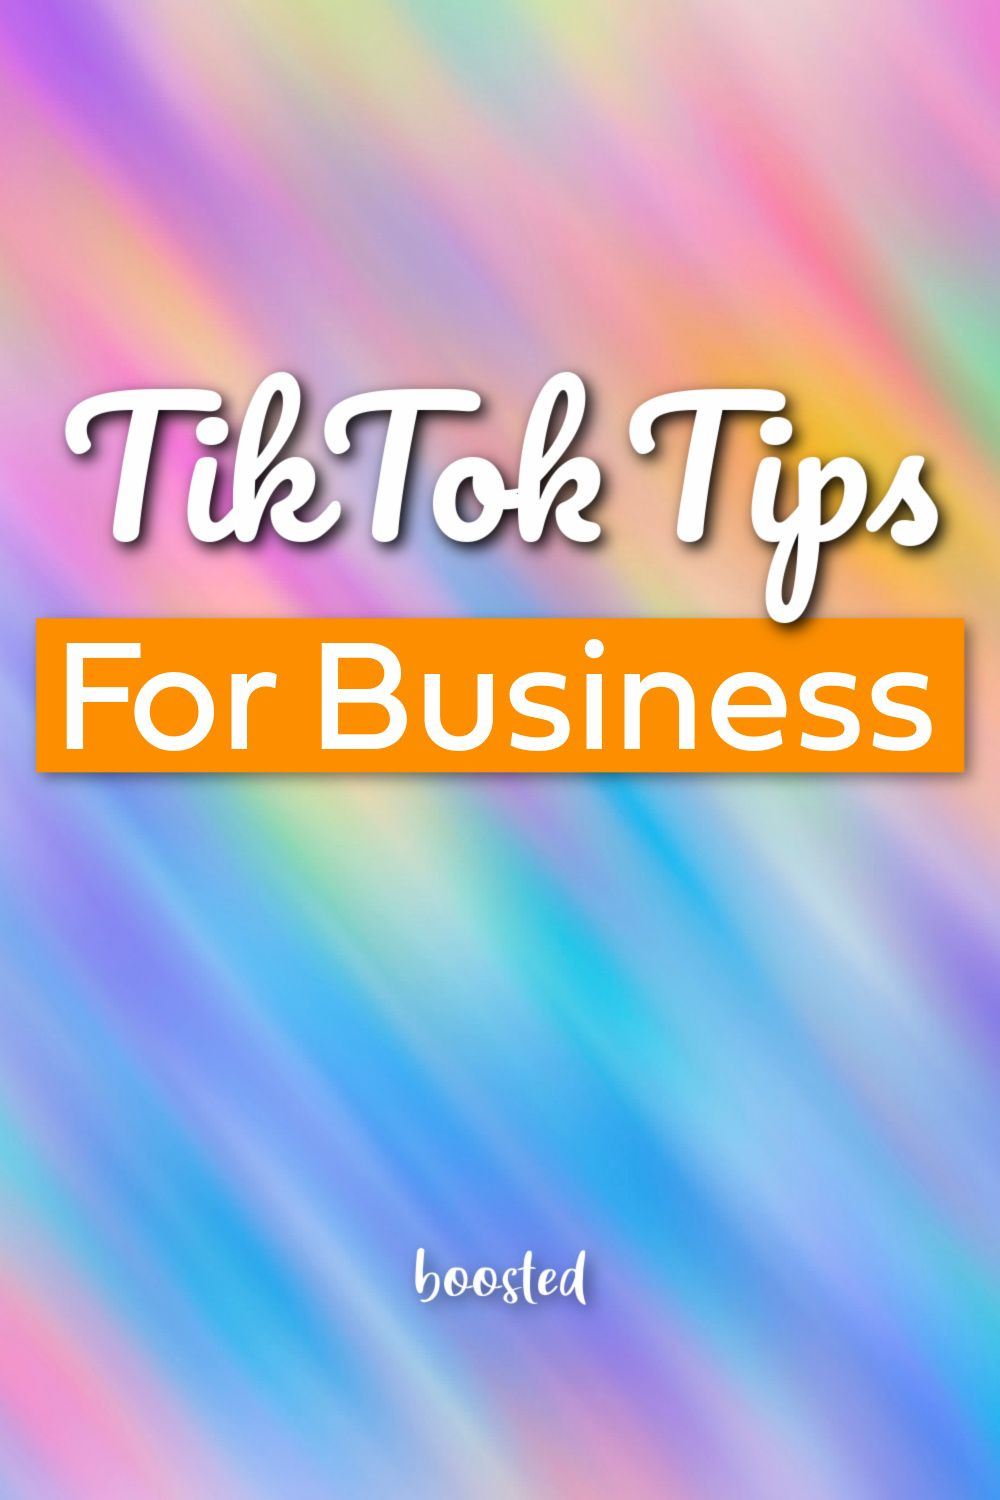 How To Use Tiktok For Business Boosted Business Boost Marketing Strategy Social Media Video Marketing